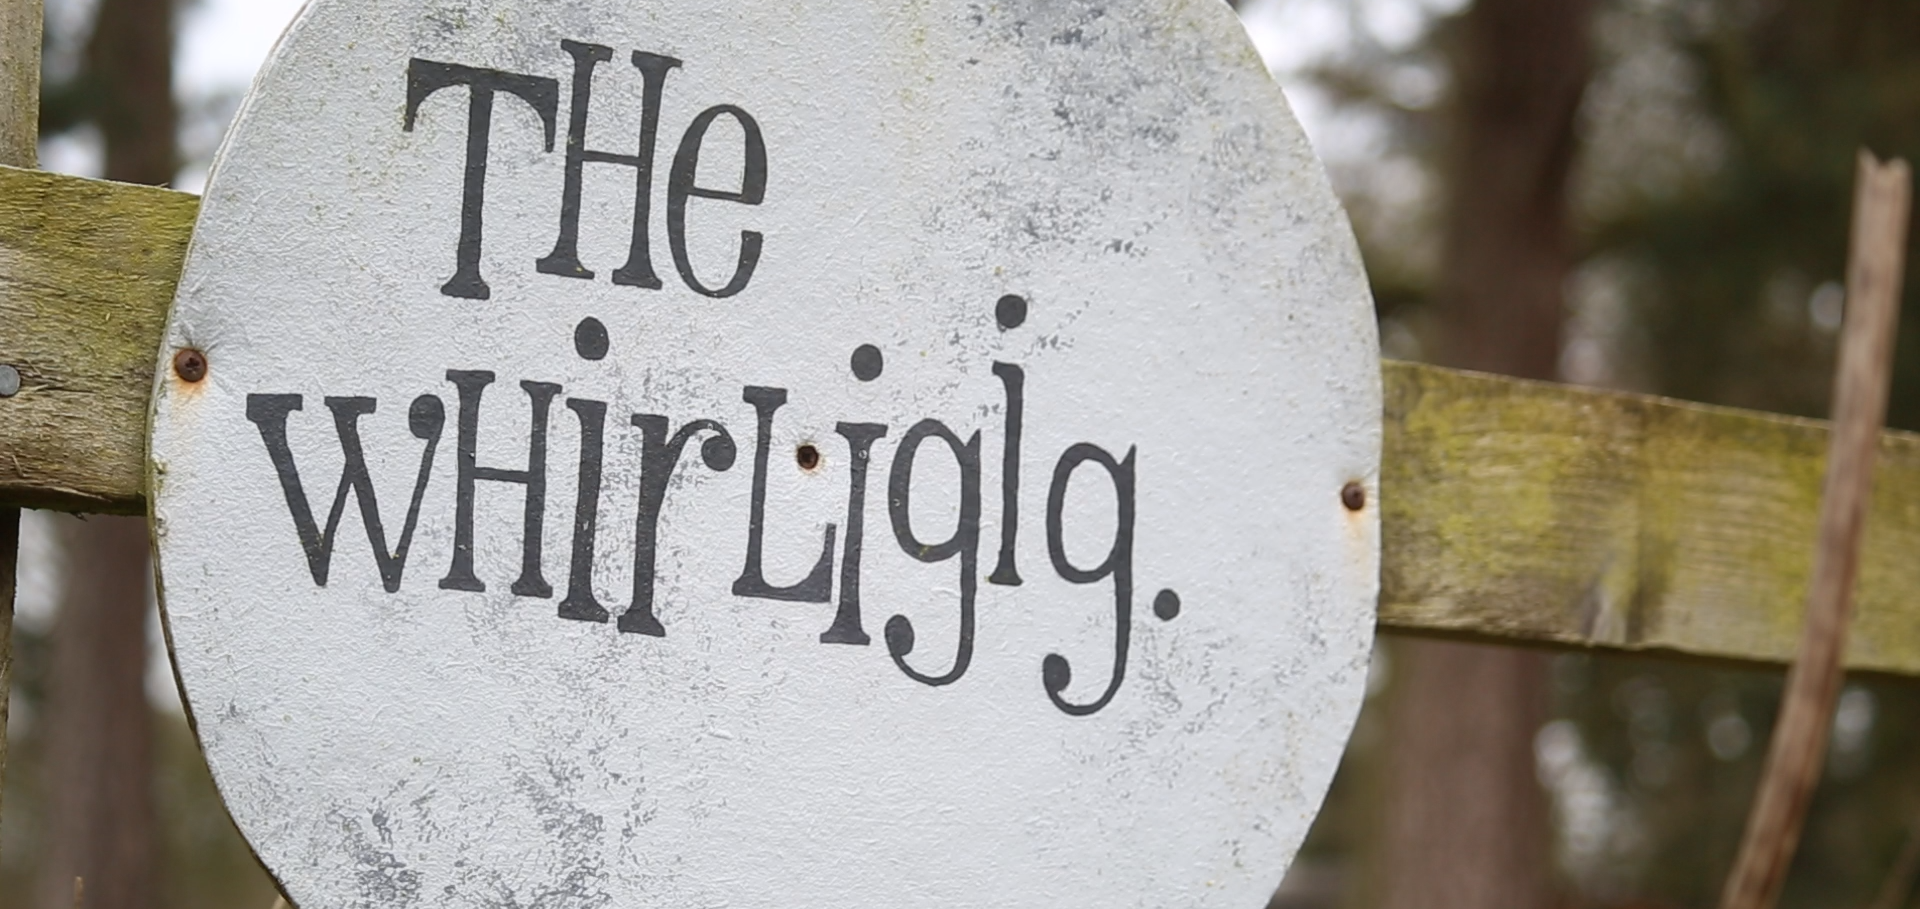 The Whirligig 1